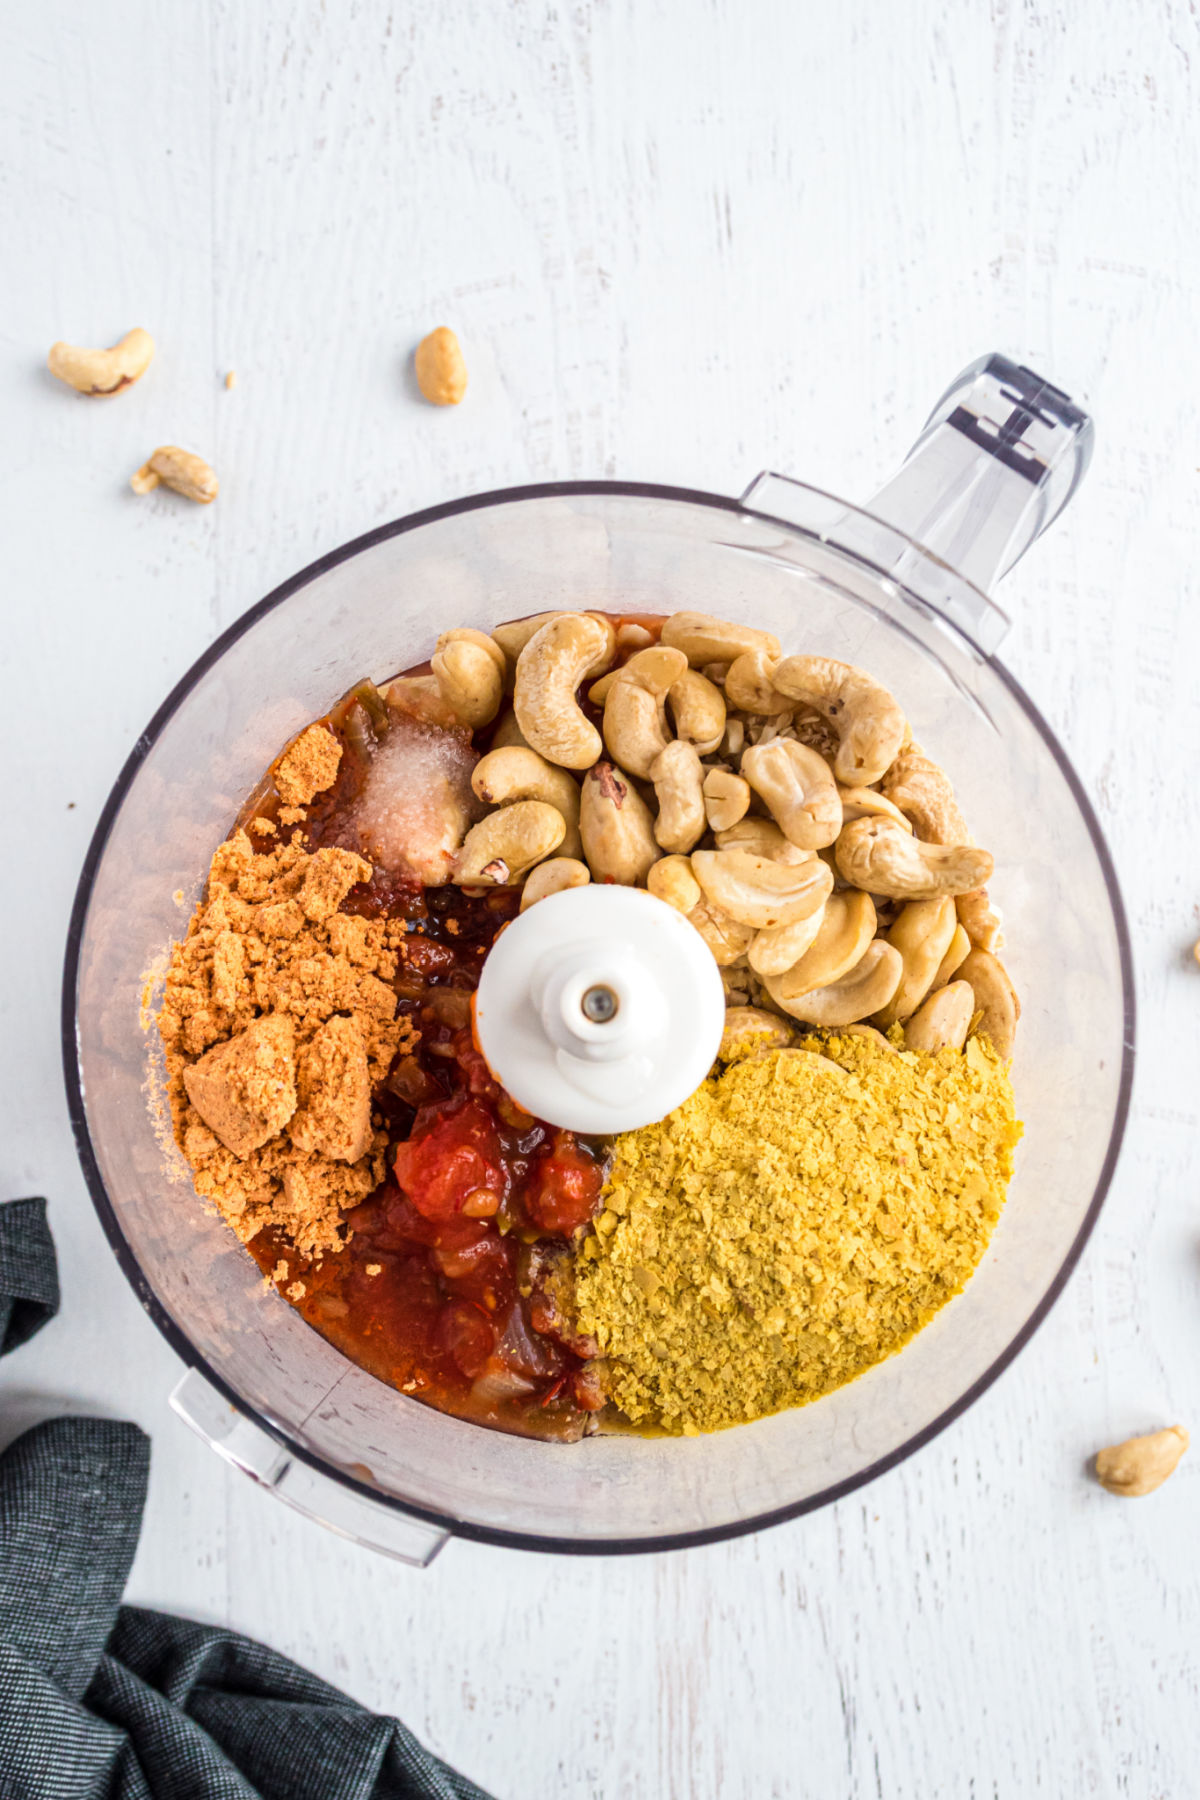 Cashew queso ingredients in a food processor.